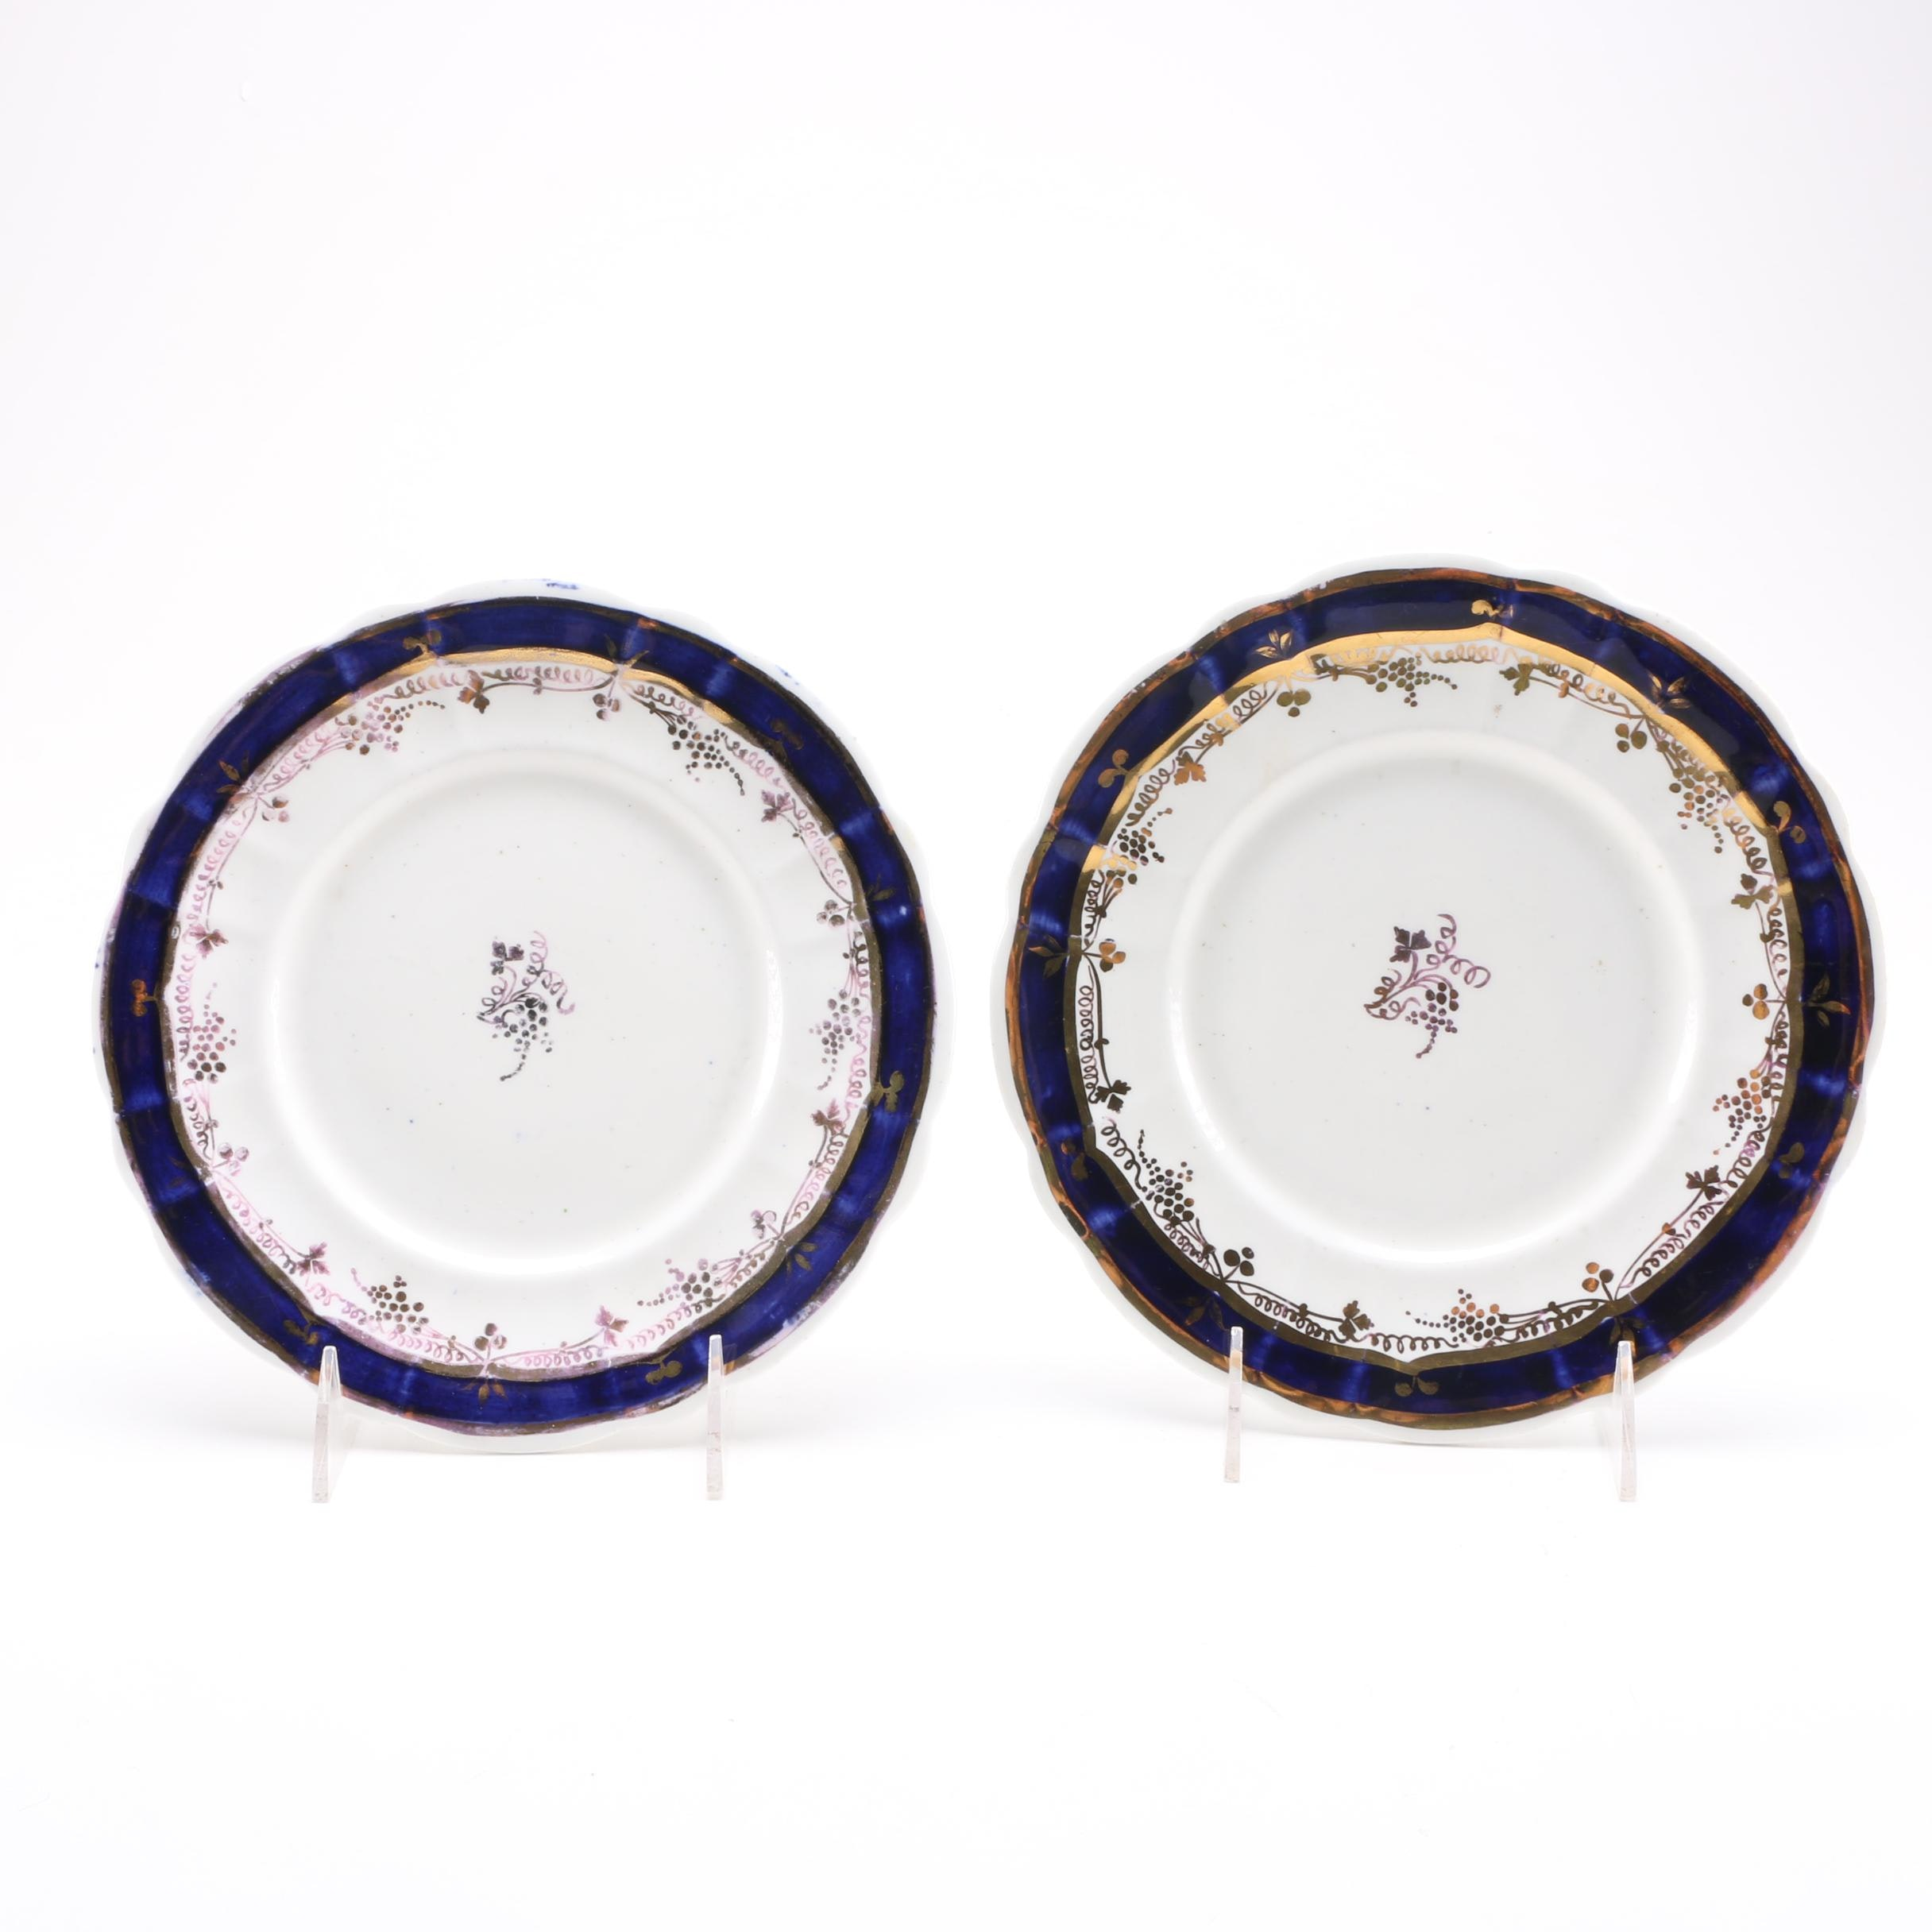 Pair of Antique Porcelain Plates